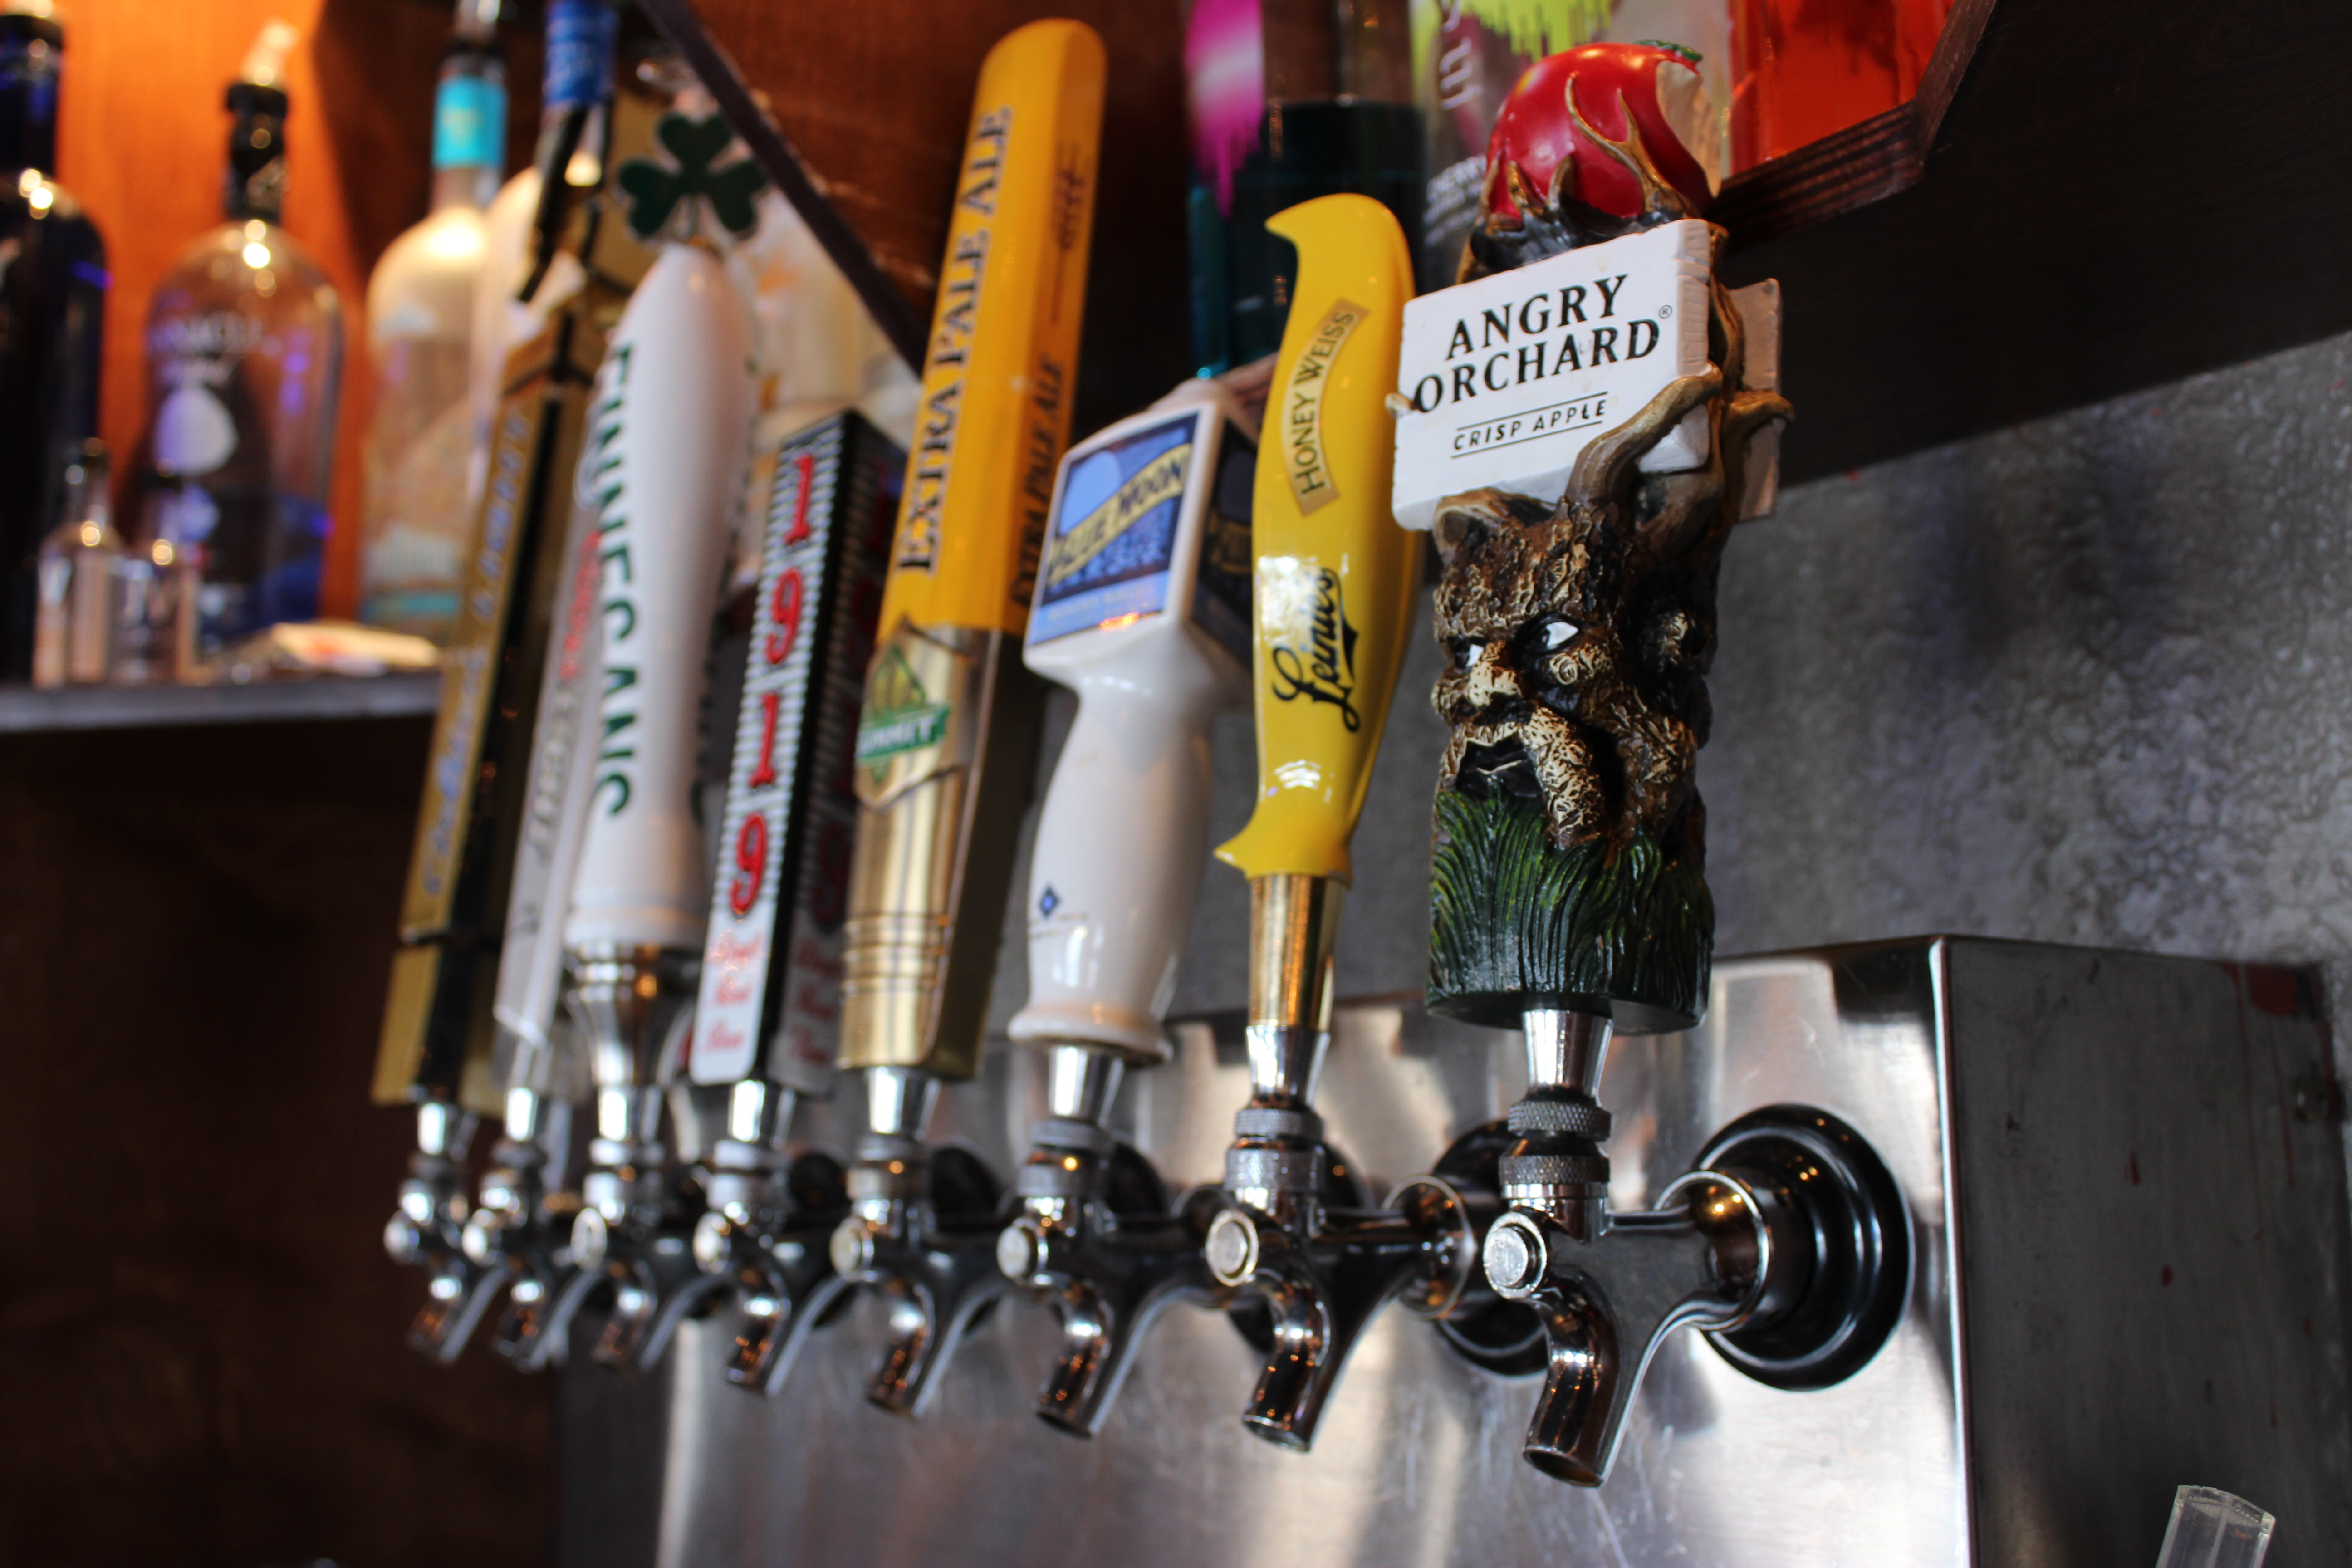 Our selection of draft beers we include.